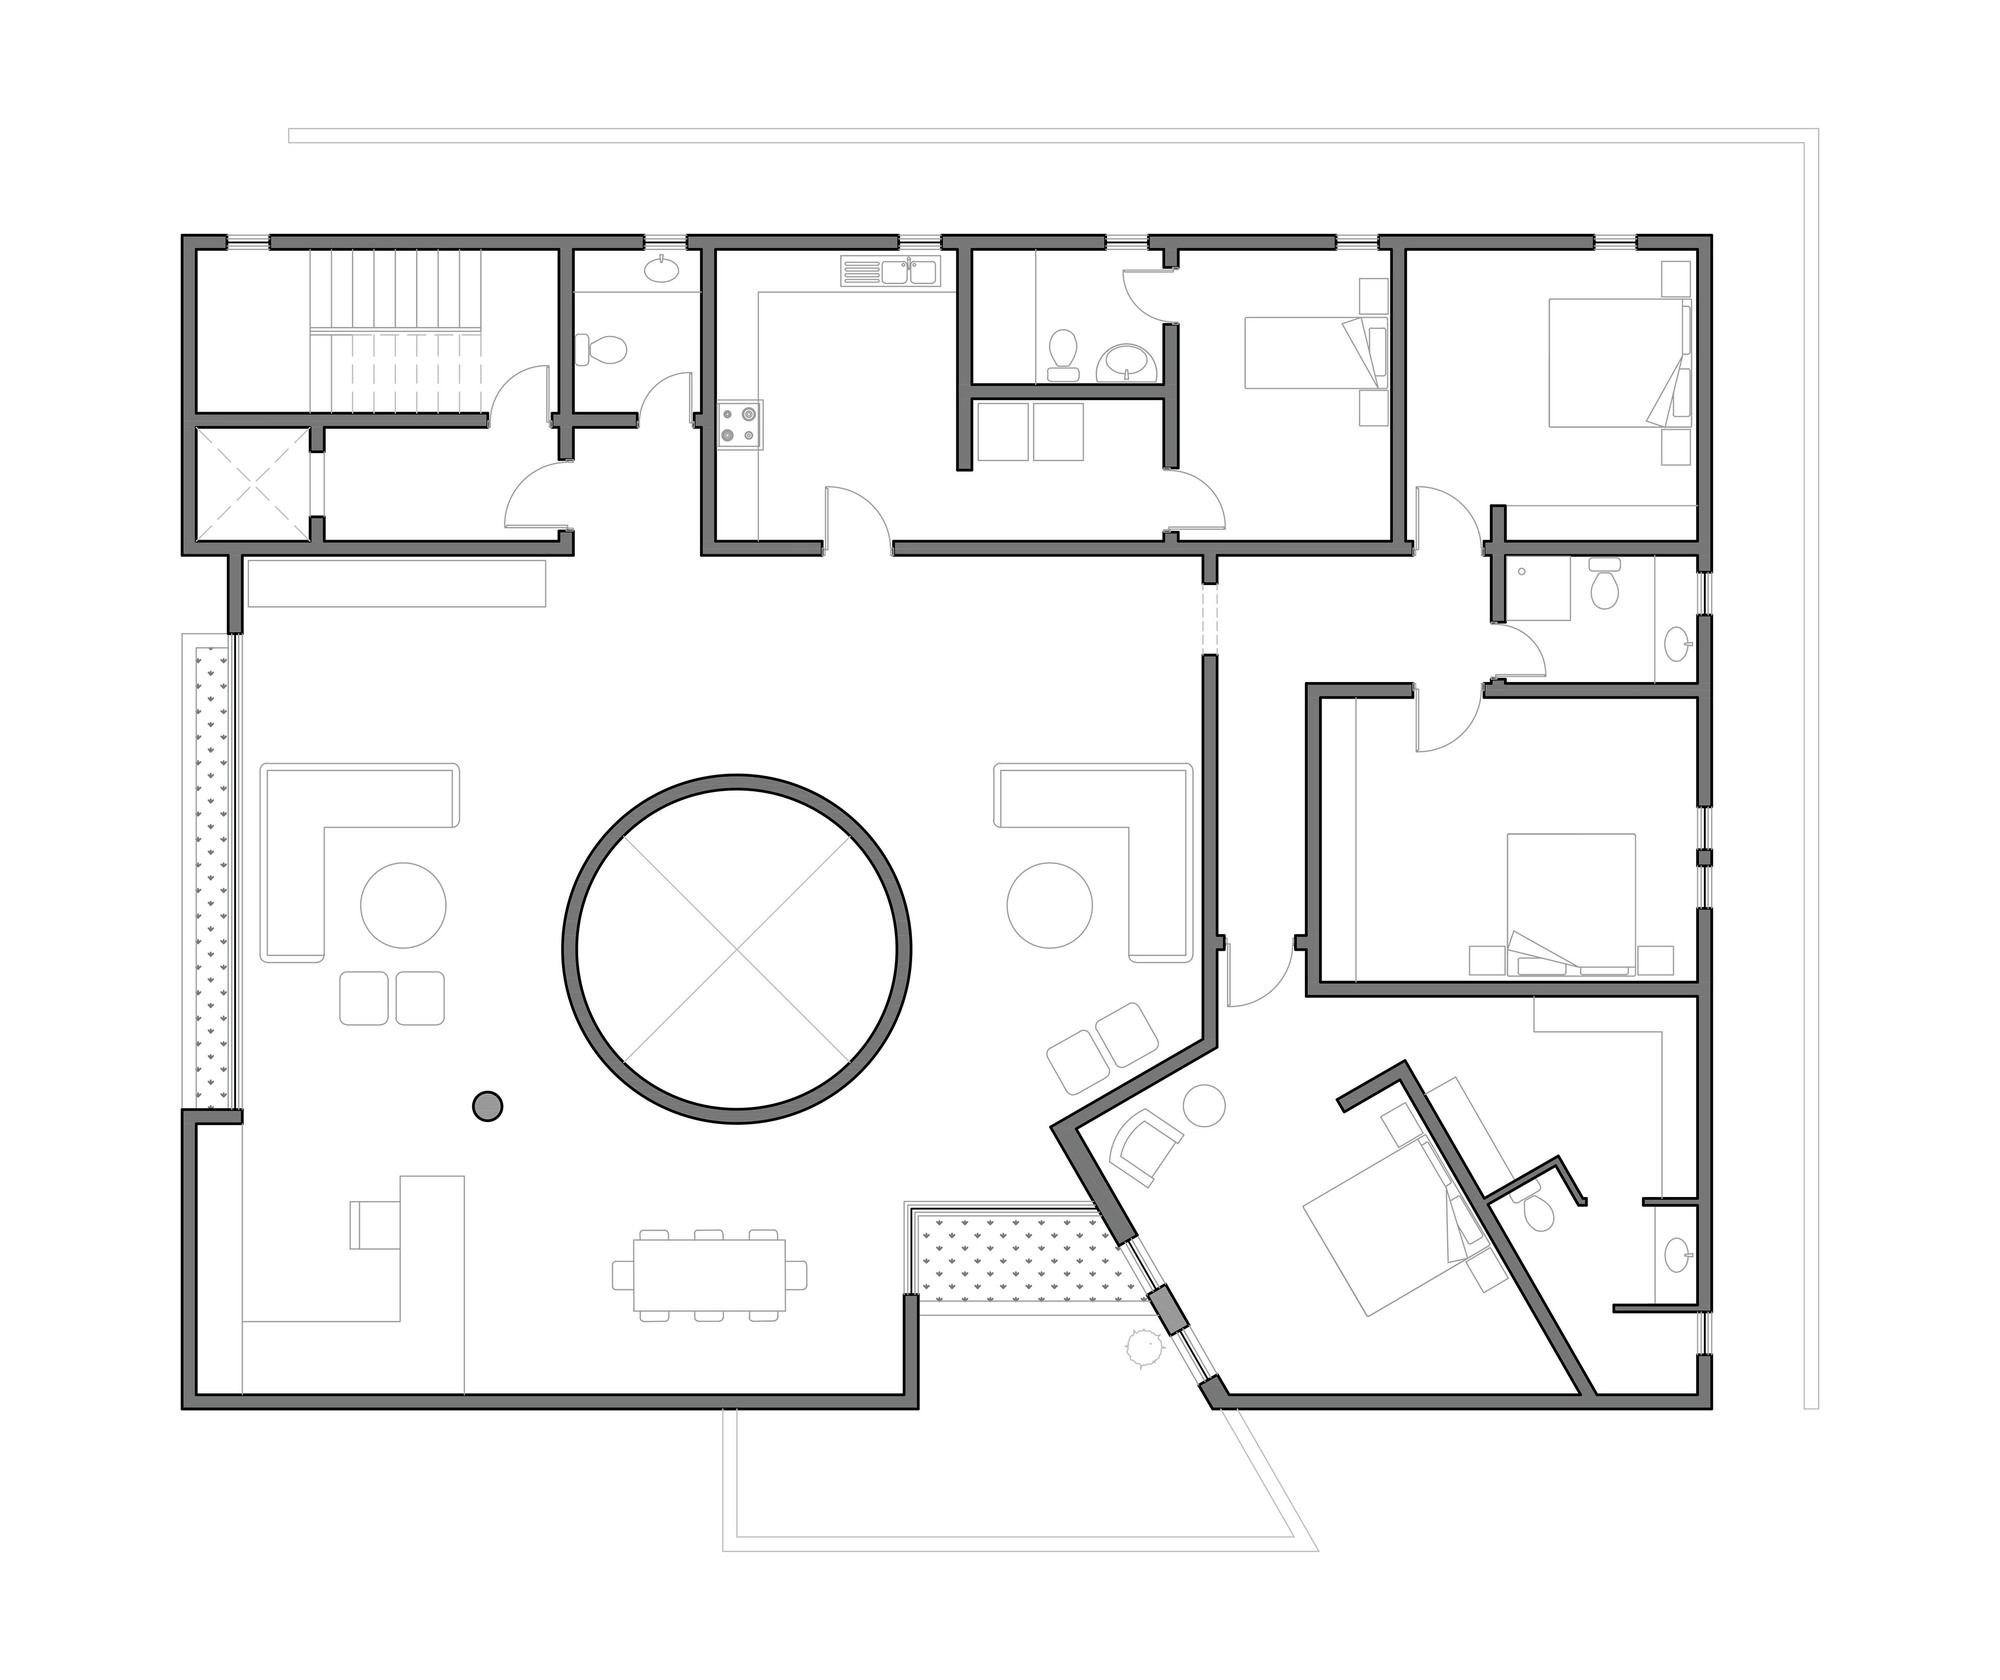 5609f88ae58ece0d3d000041 Box House Ii Massive Order Second Floor Plan on Modern Architecture Homes Floor Plans